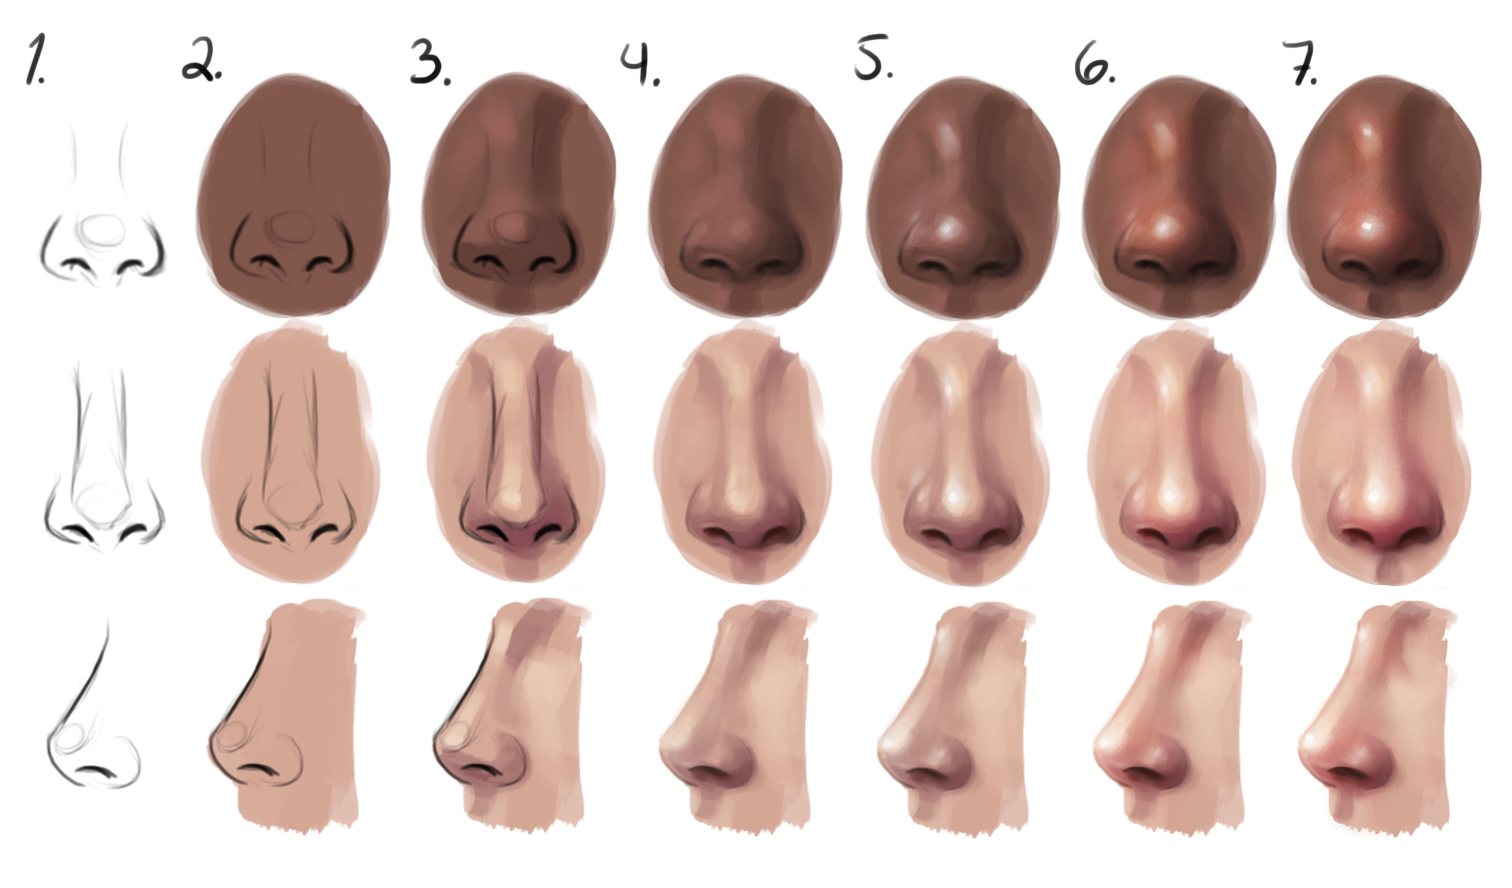 Semirealism Nose  Step By Step By Sandramalie